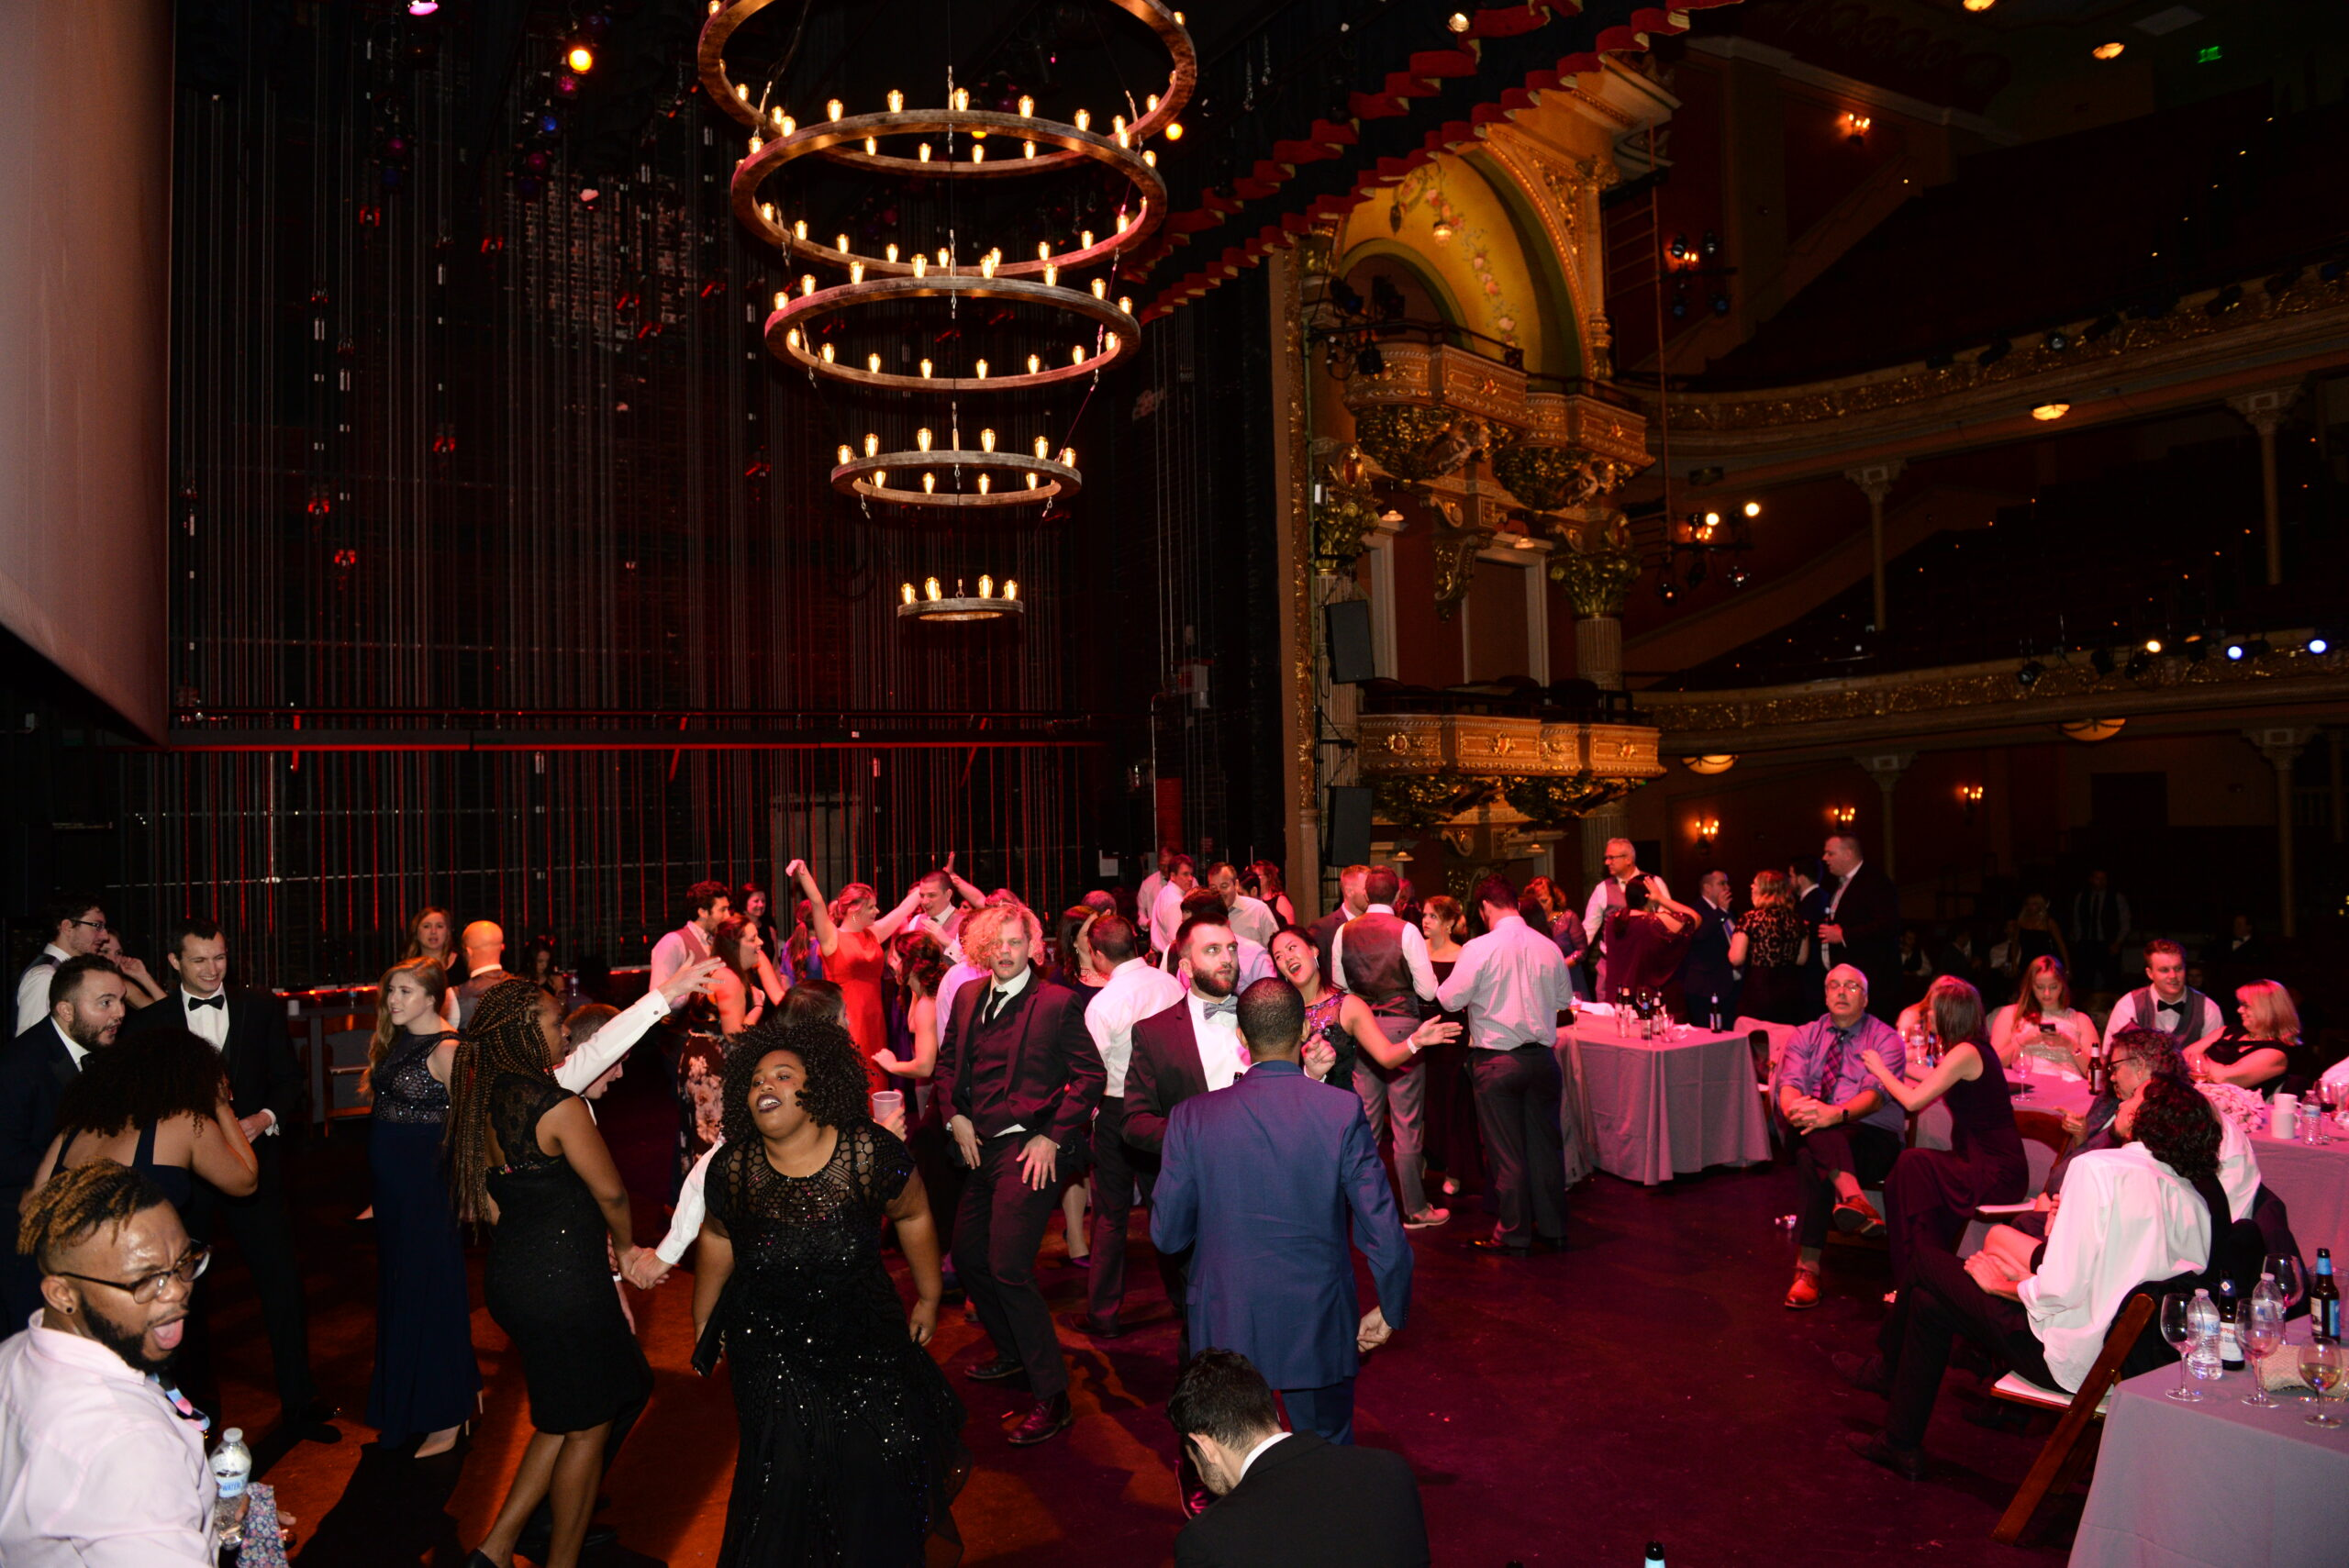 Wedding Dance Floor on stage with balconies in background at The Colonial Theatre